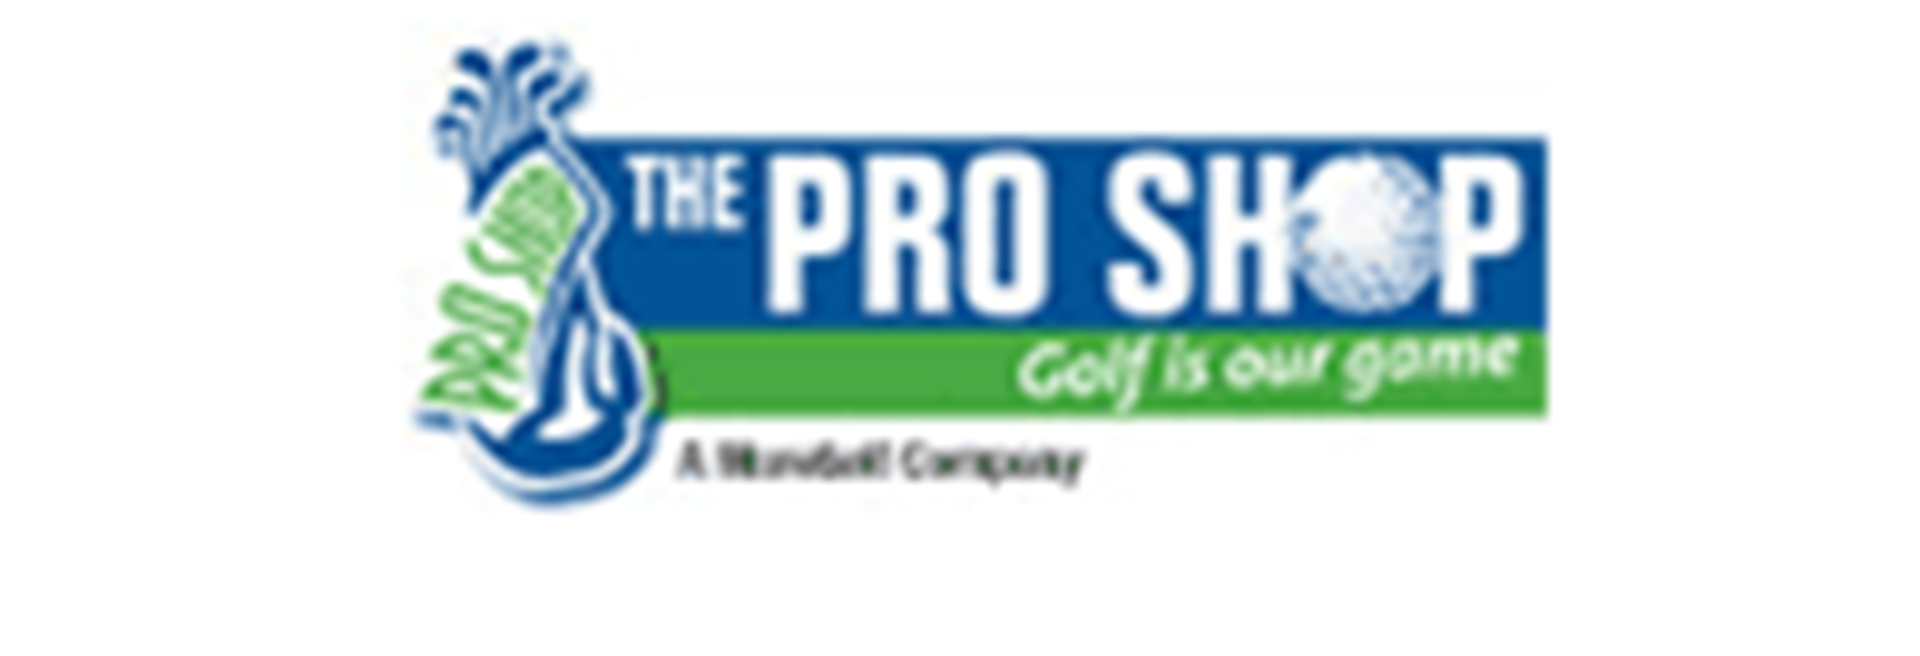 Little MMI Sponsor: The Pro Shop